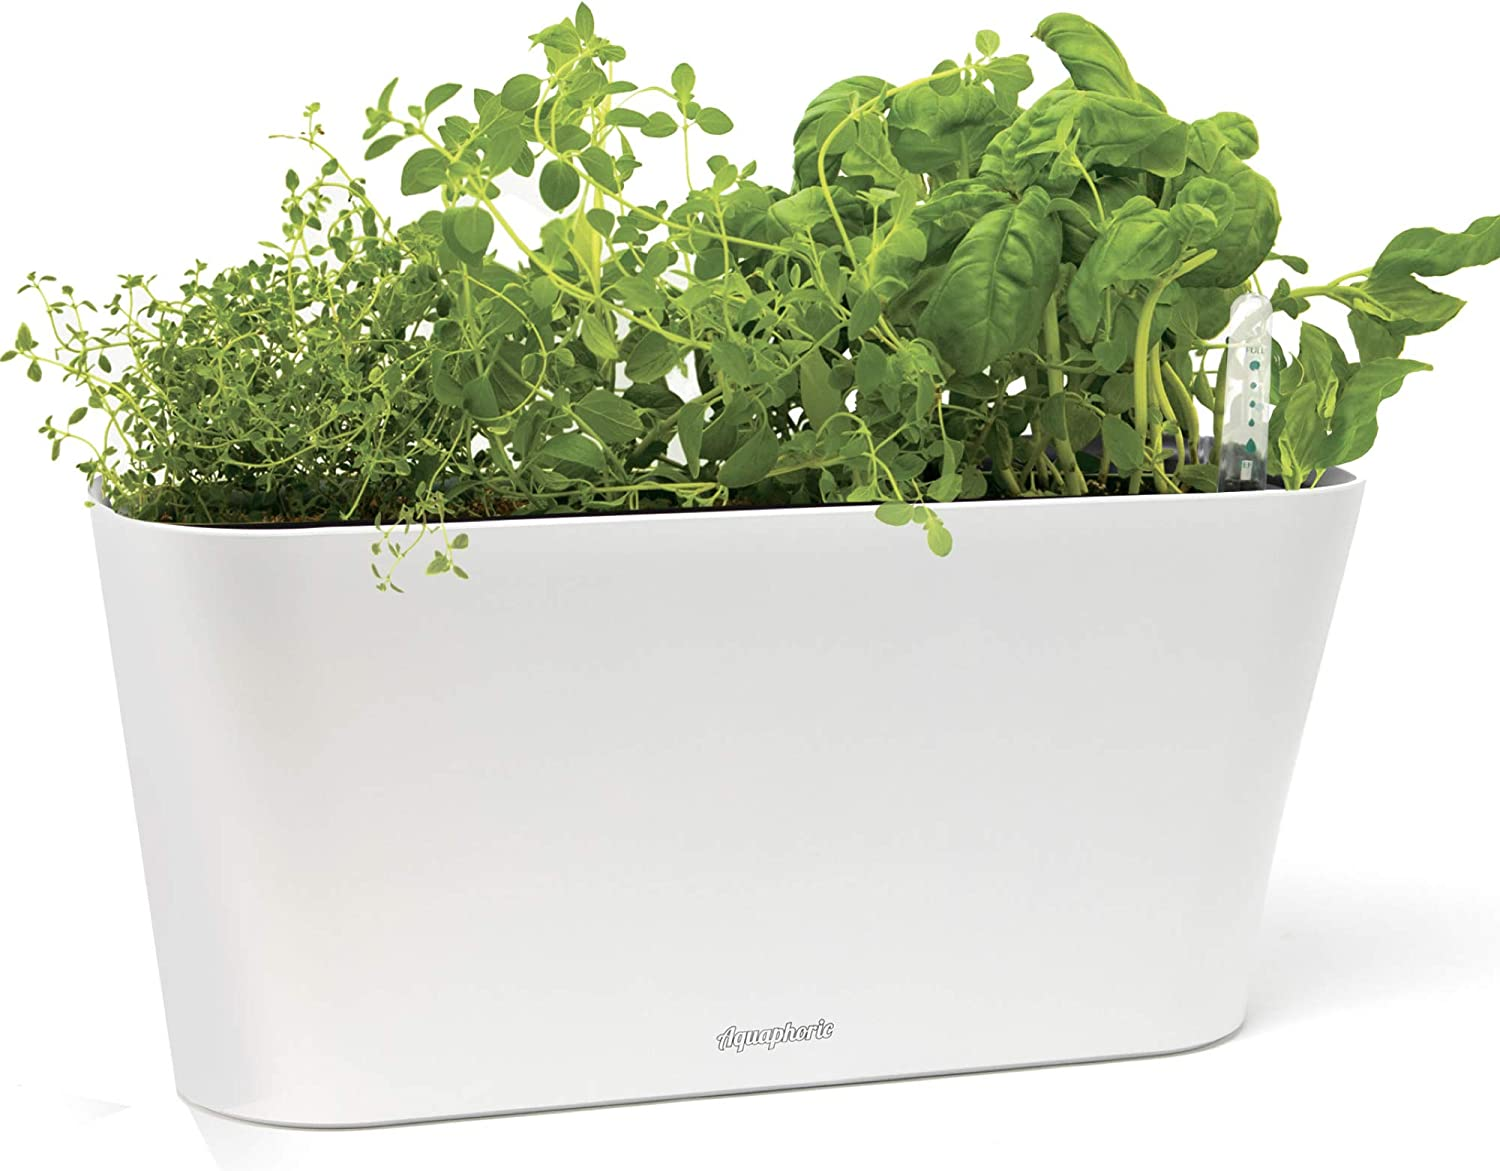 Aquaphoric Herb Garden Tub - Self Watering Passive Hydroponic Planter +  Fiber Soil, Keeps Indoor Kitchen Herbs Fresh and Growing for Weeks on Your  ...